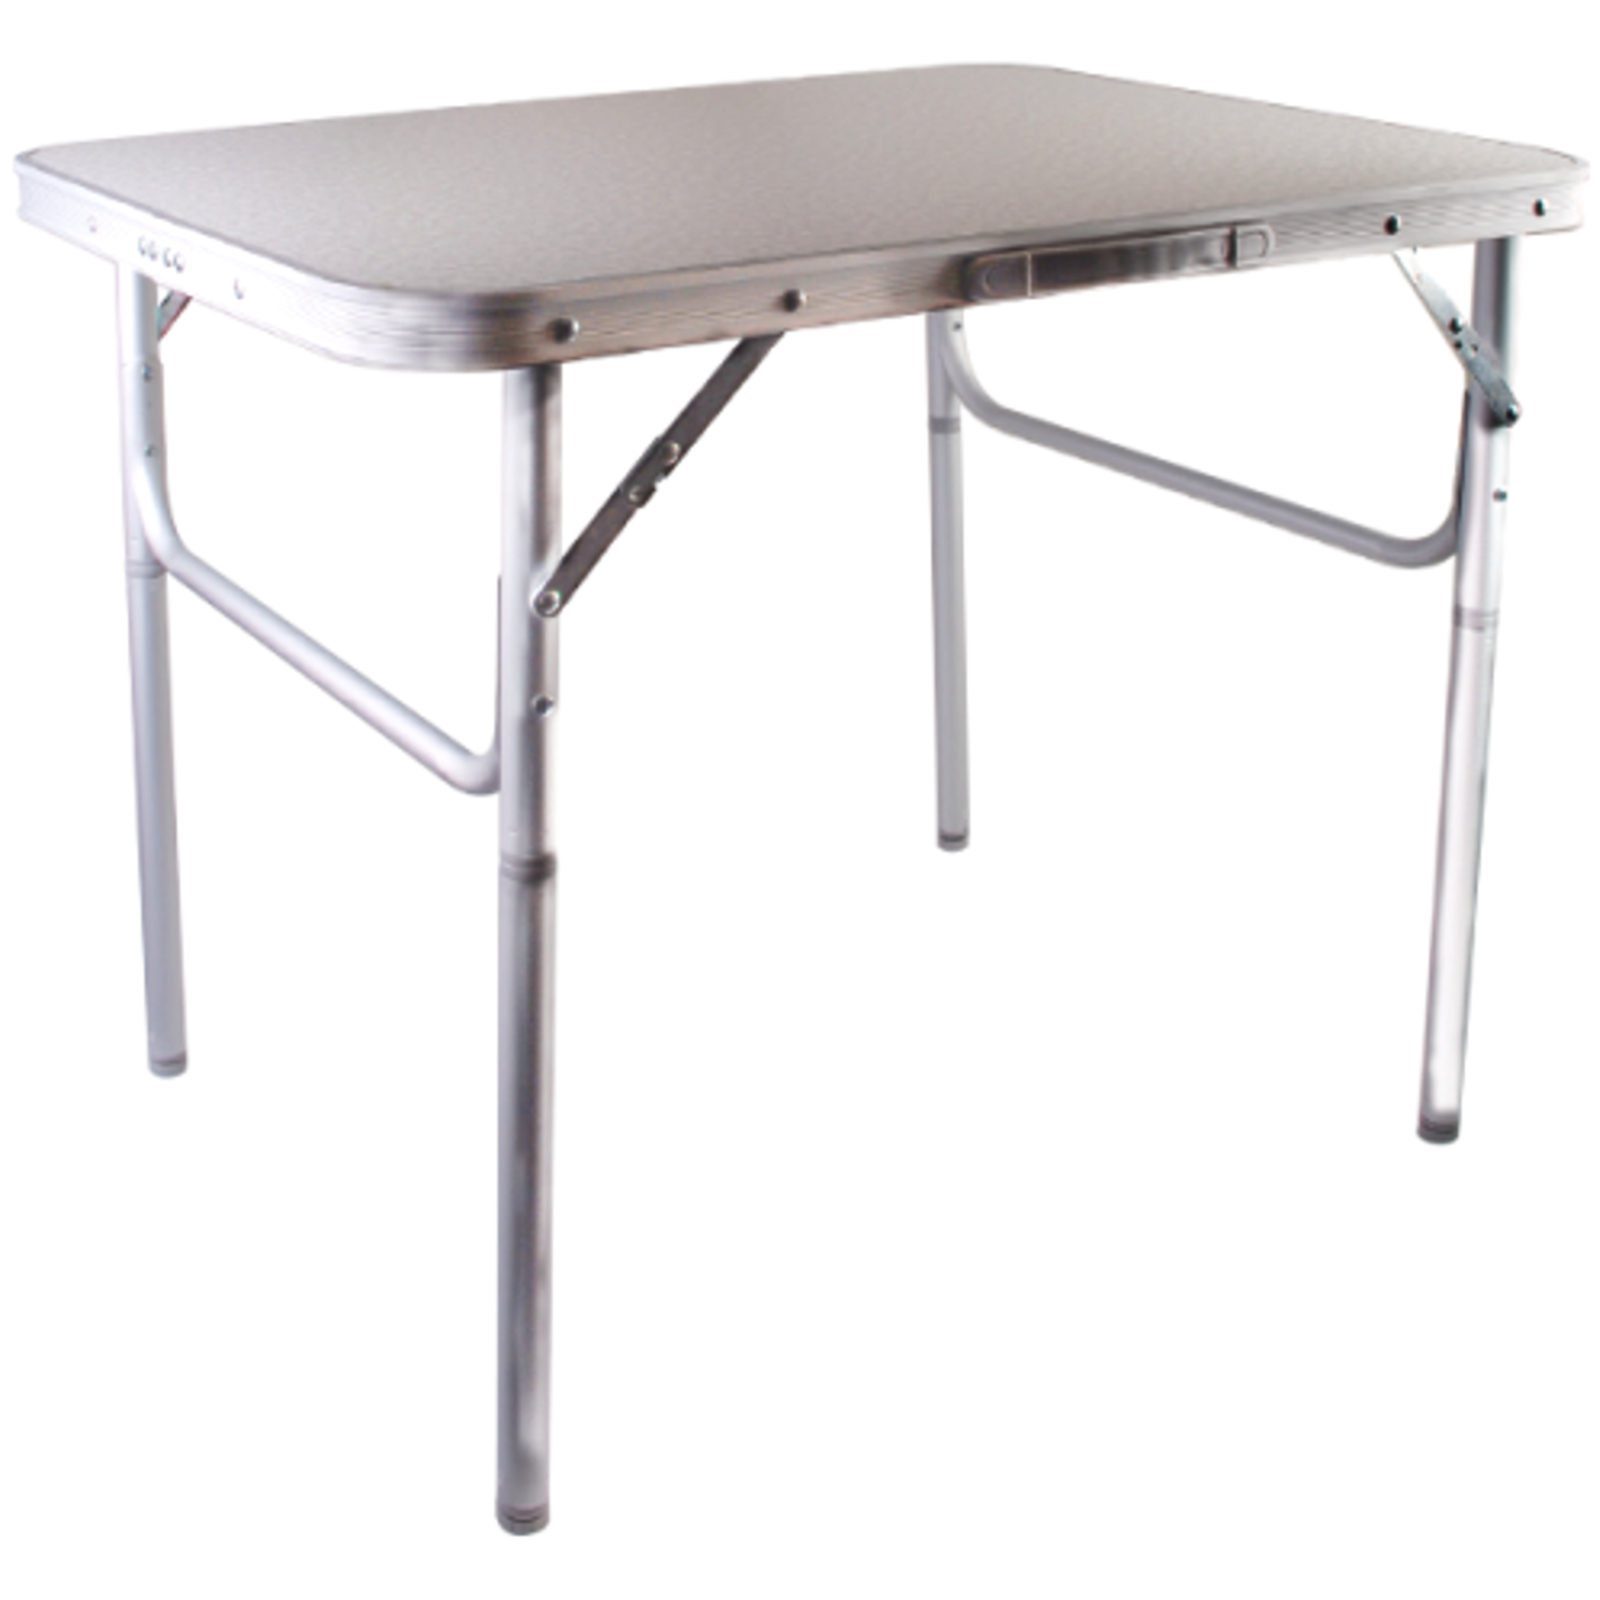 Aluminum table camping adjustable height balcony aluminium - Camping table adjustable height ...